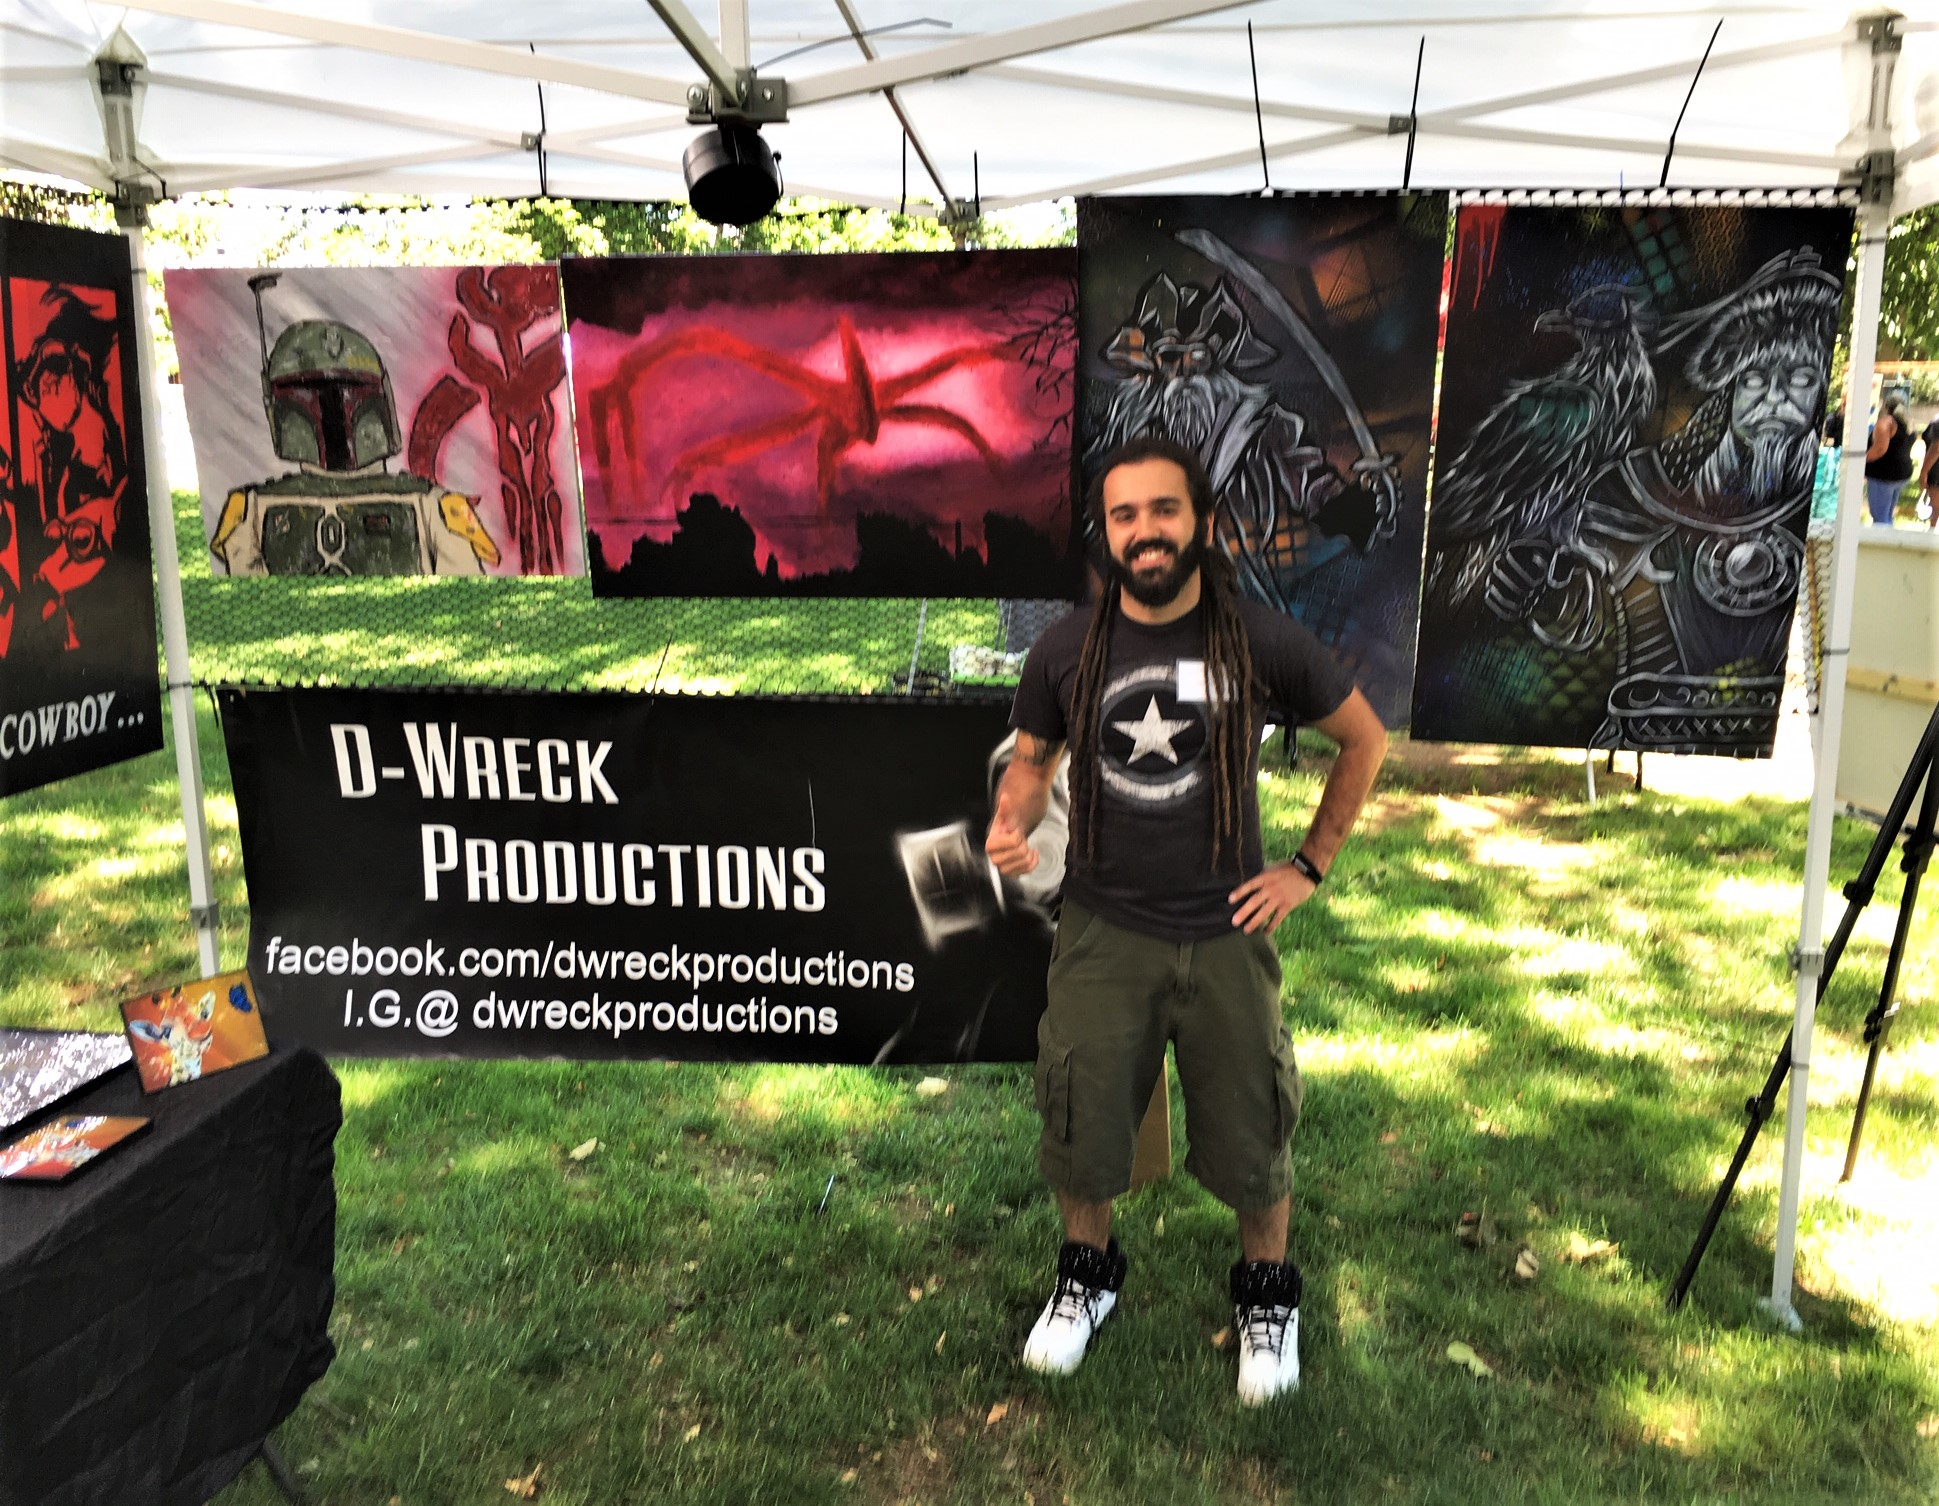 D. Wreck Productions